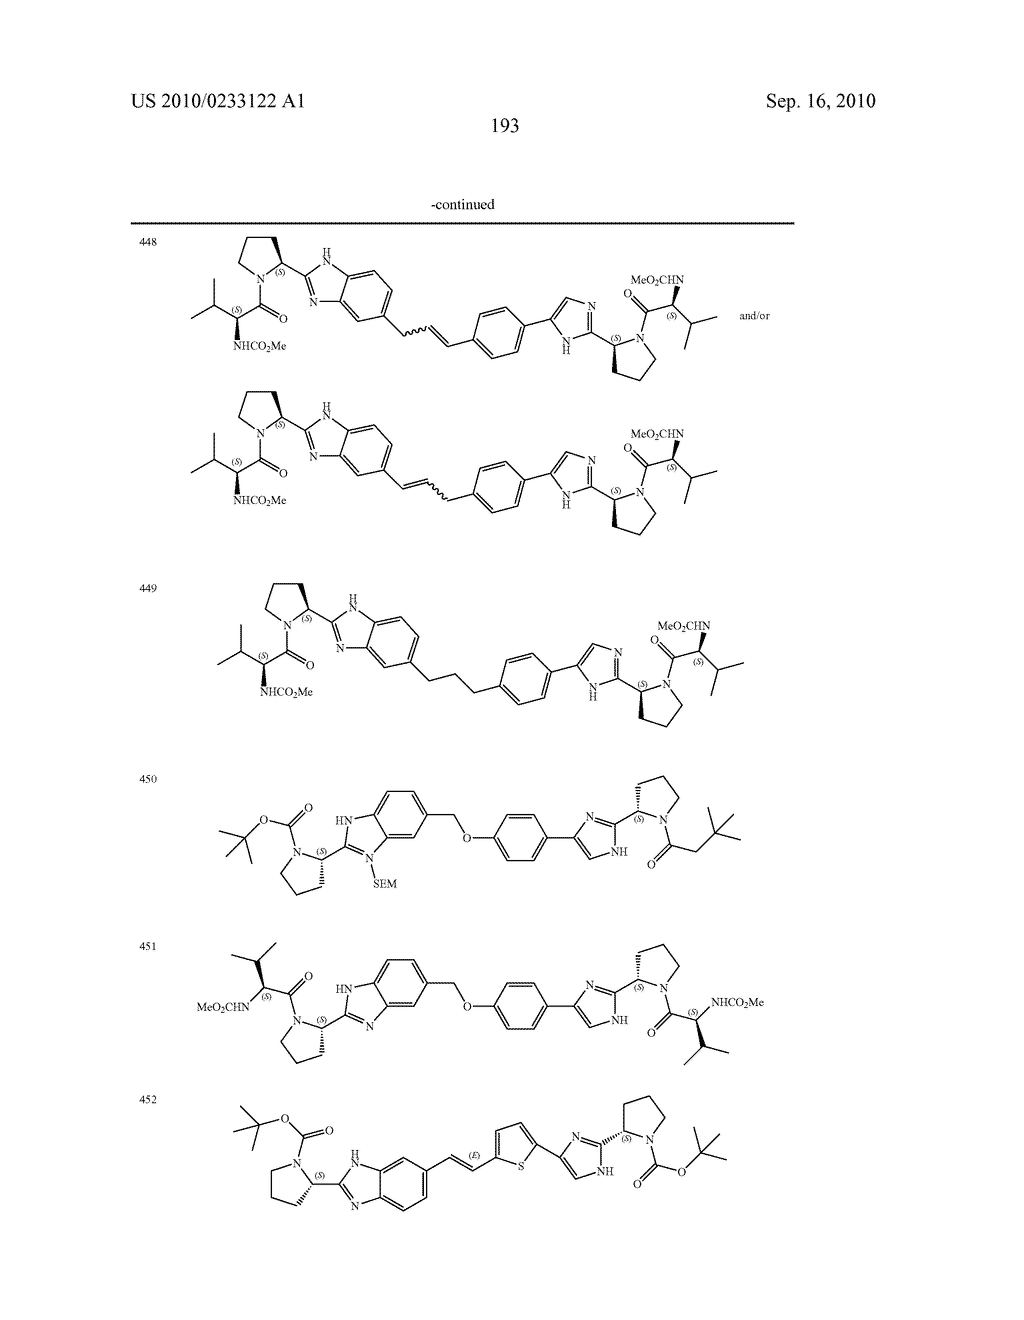 NOVEL BENZIMIDAZOLE DERIVATIVES - diagram, schematic, and image 194